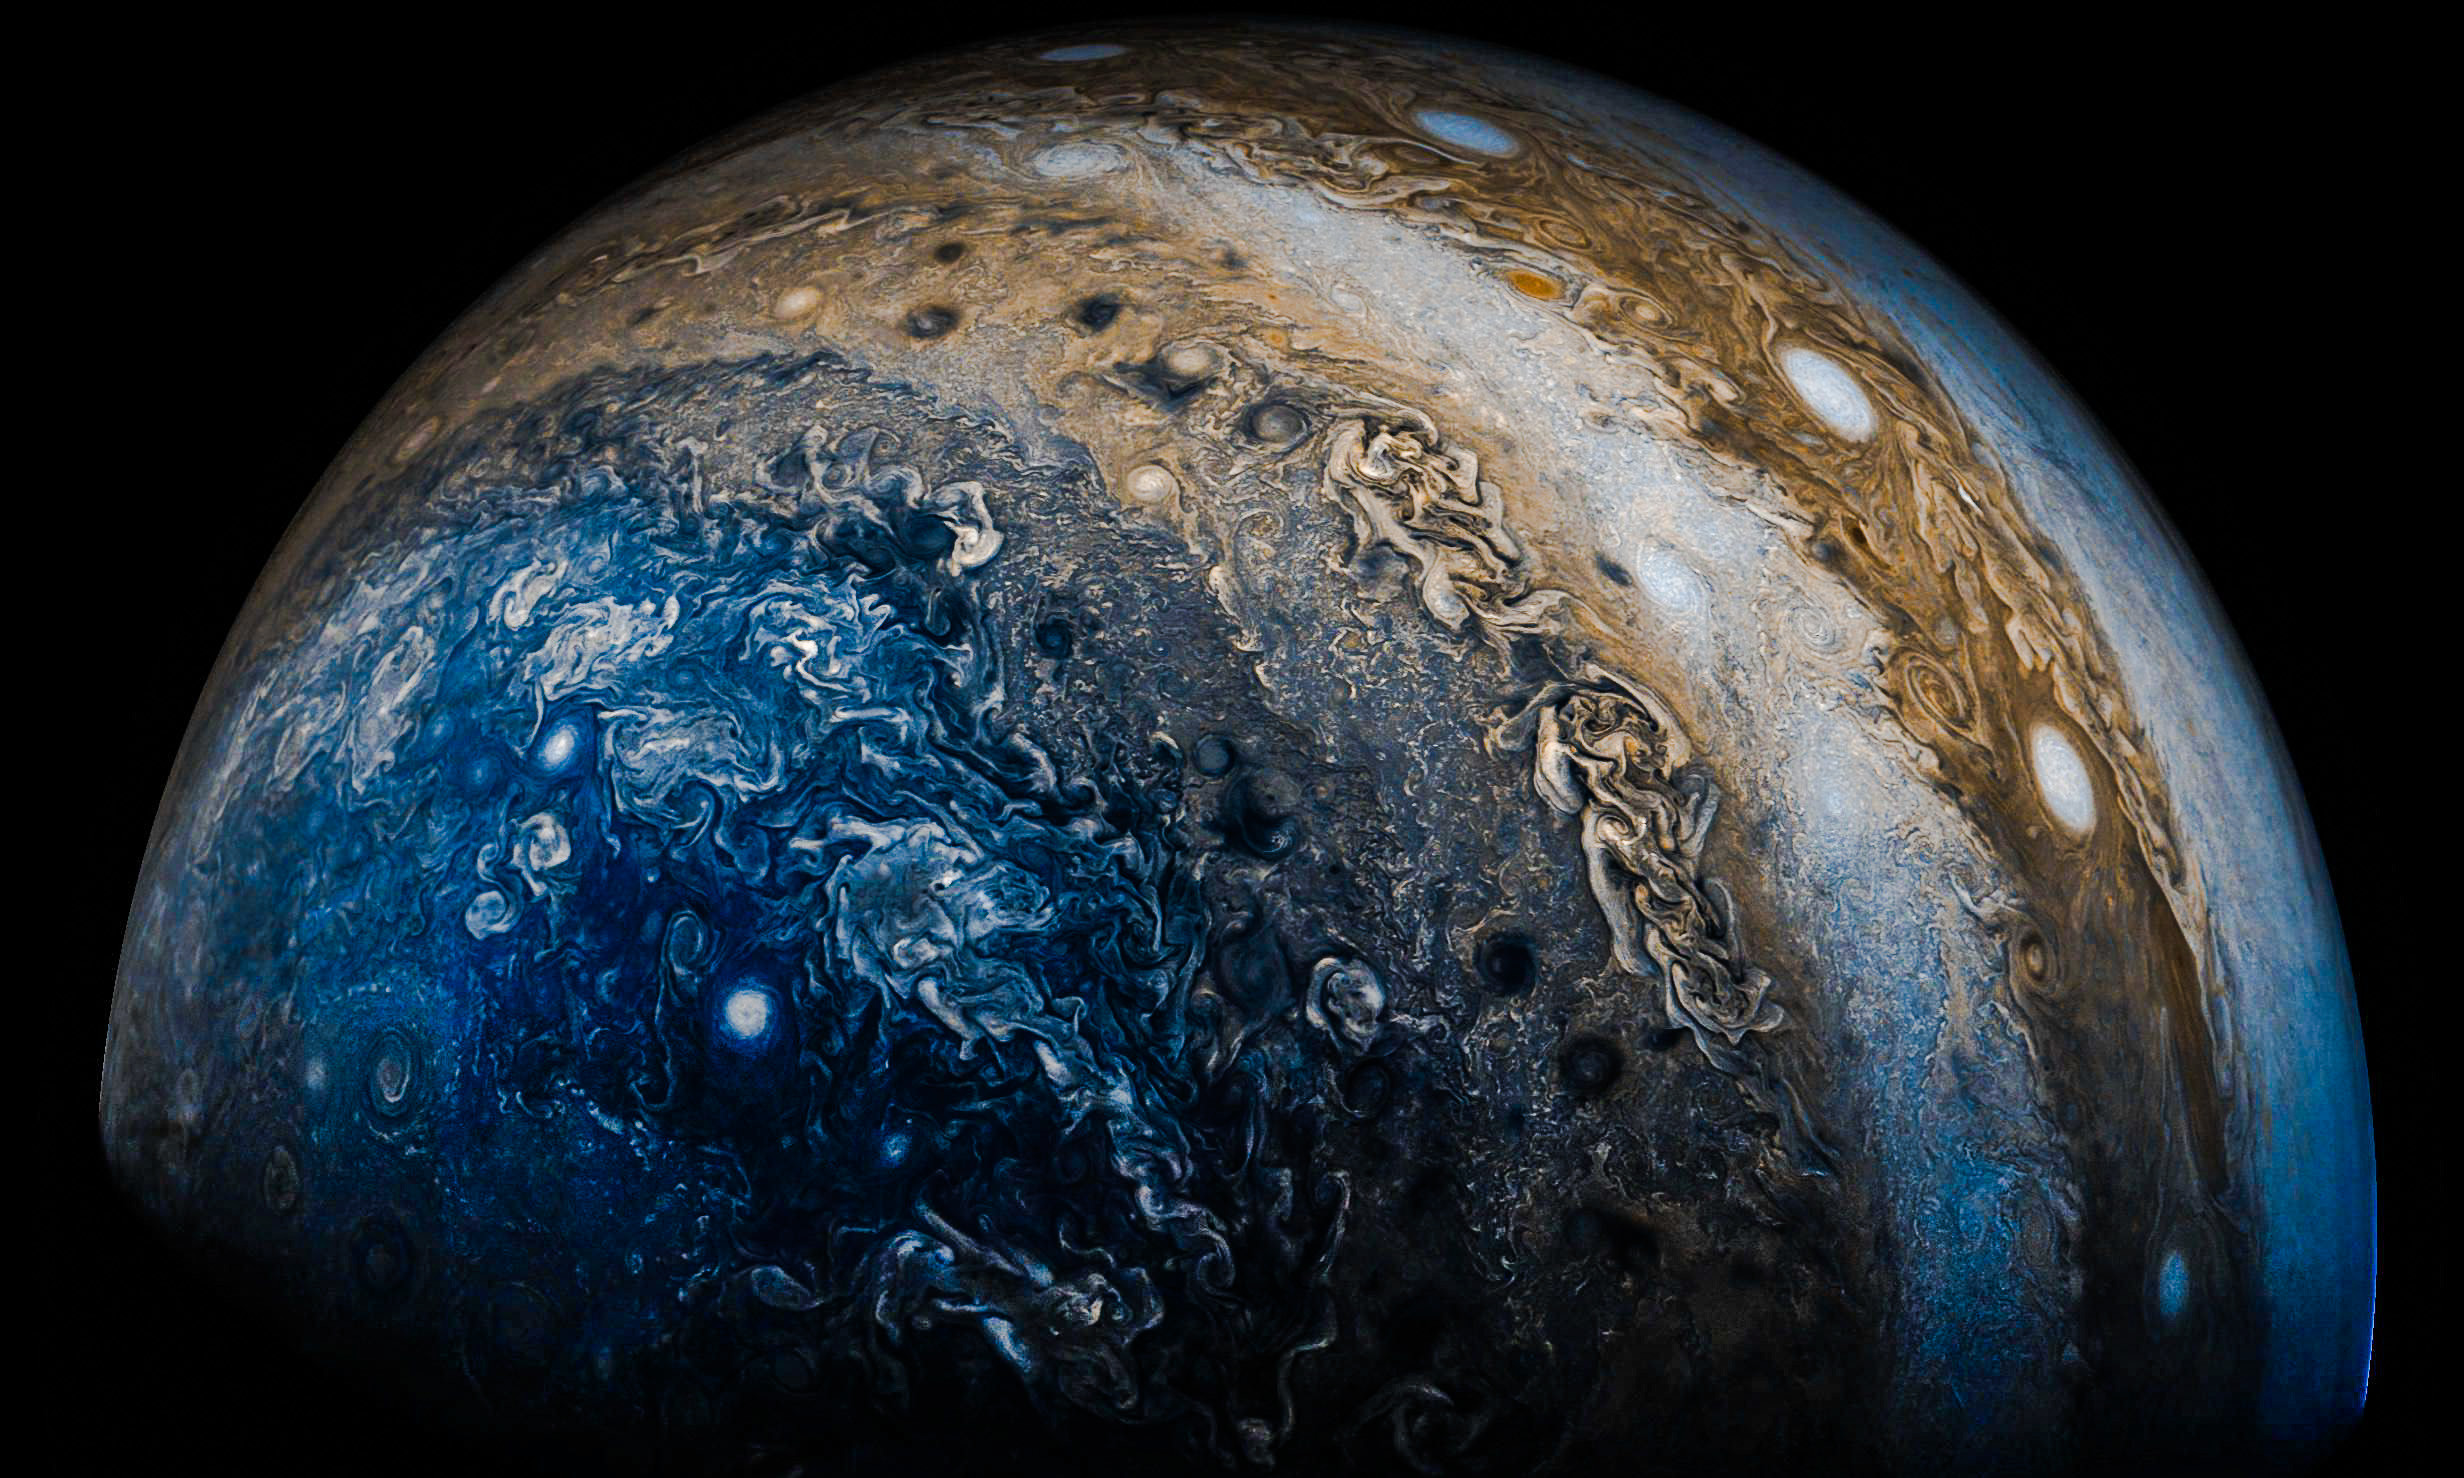 Jupiter Wallpaper 69 images 2464x1478